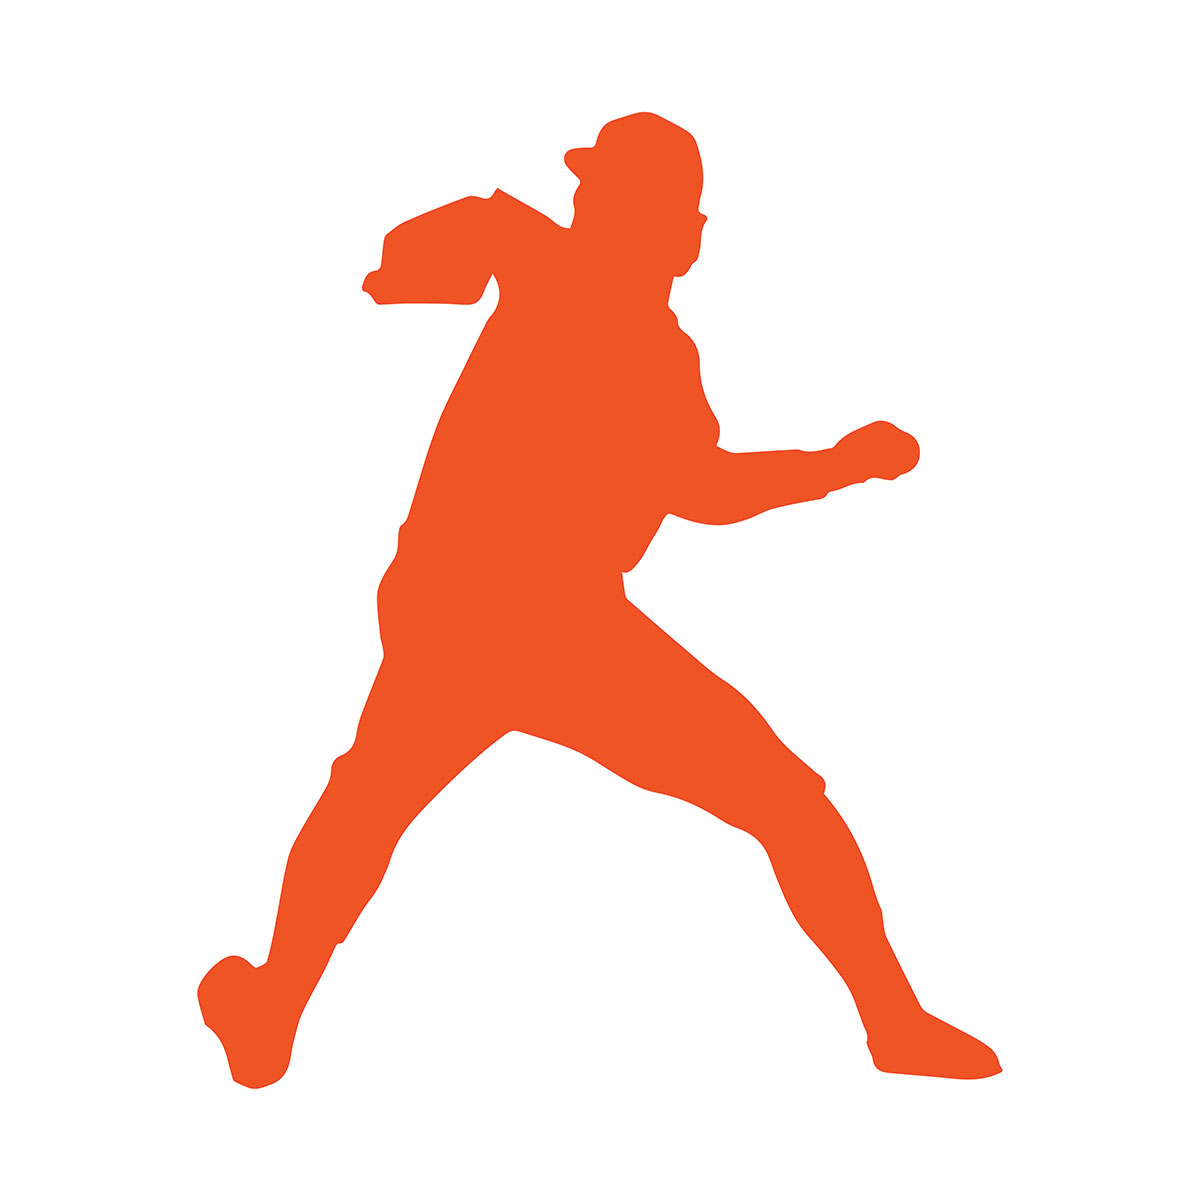 Silhouette of baseball player pitching